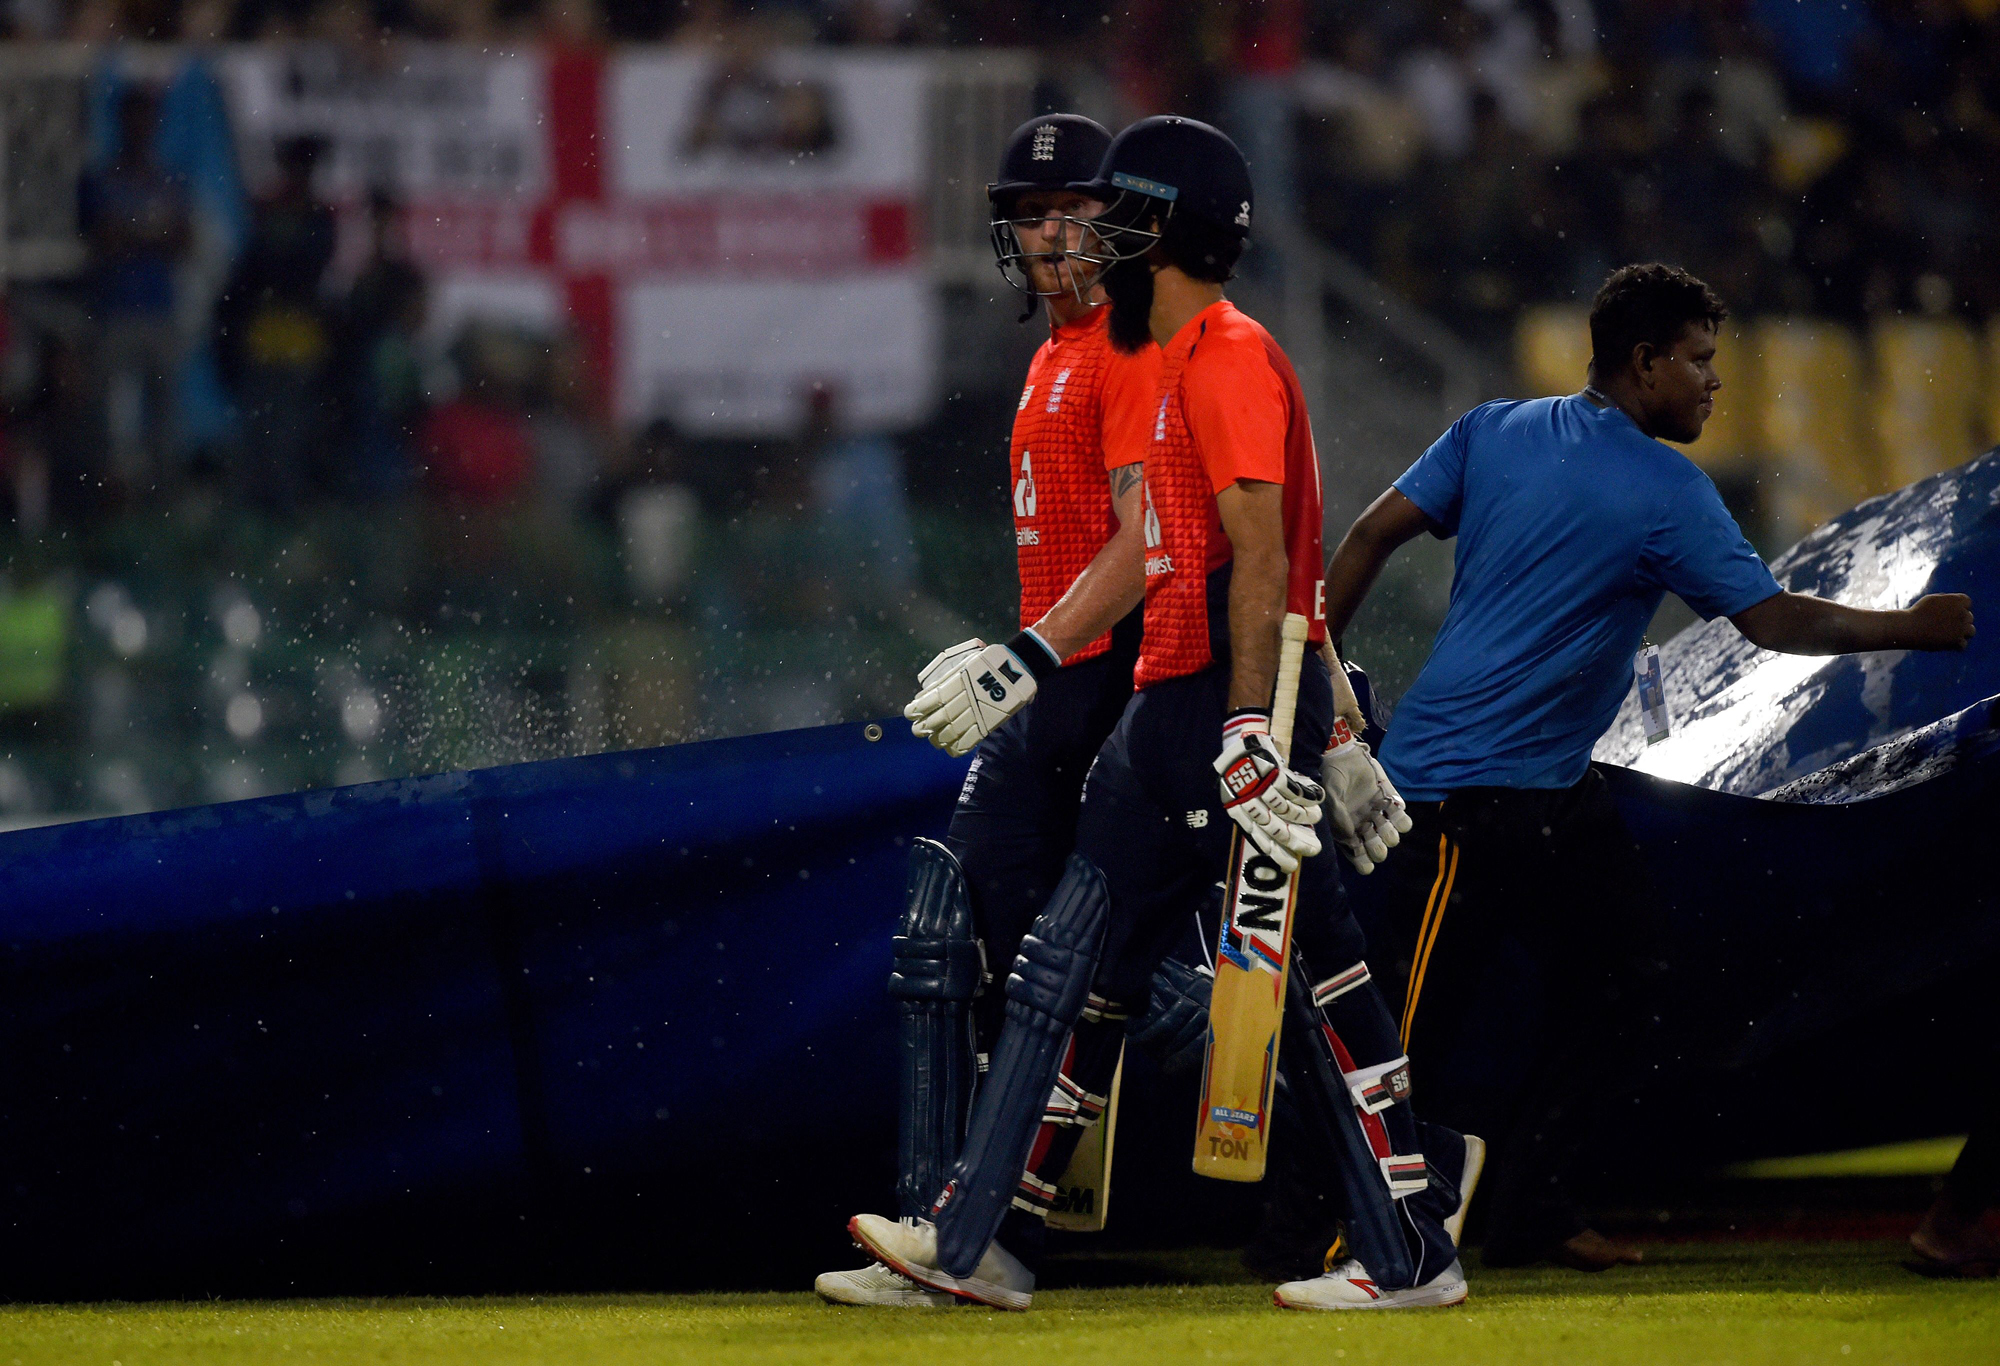 England cricketer Ben Stokes (L) and Moeen Ali leave the ground after rain showers have stop the play during the international Twenty20 cricket match between Sri Lanka and England at the R. Peremadasa Stadium in Colombo on October 27, 2018. (Photo by ISHA